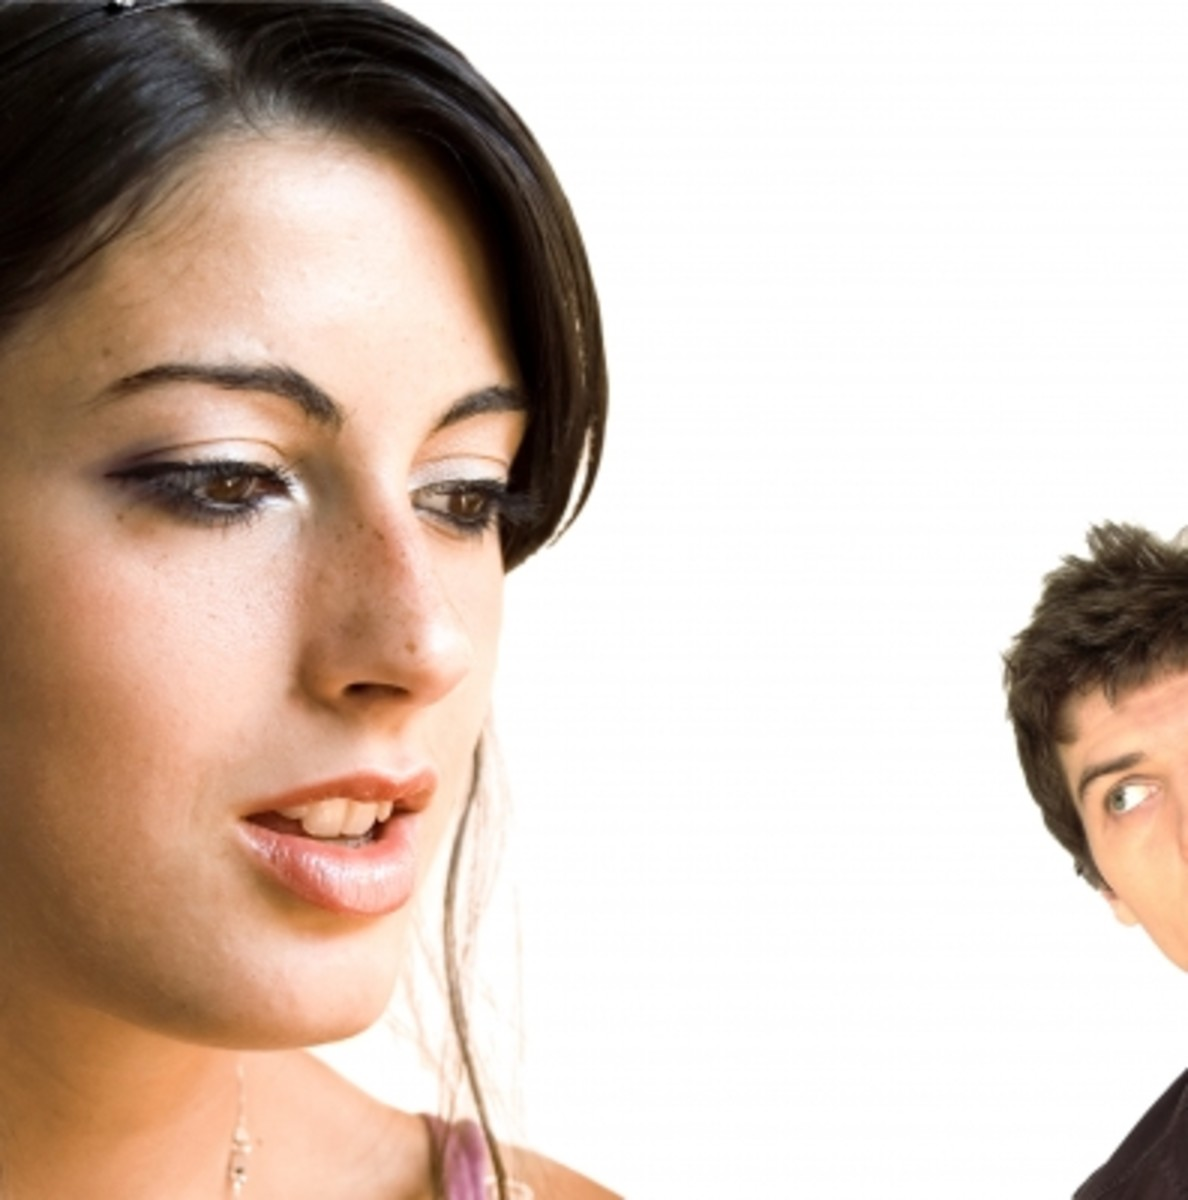 What Not to Do When You Realize You Have a Cheating Spouse